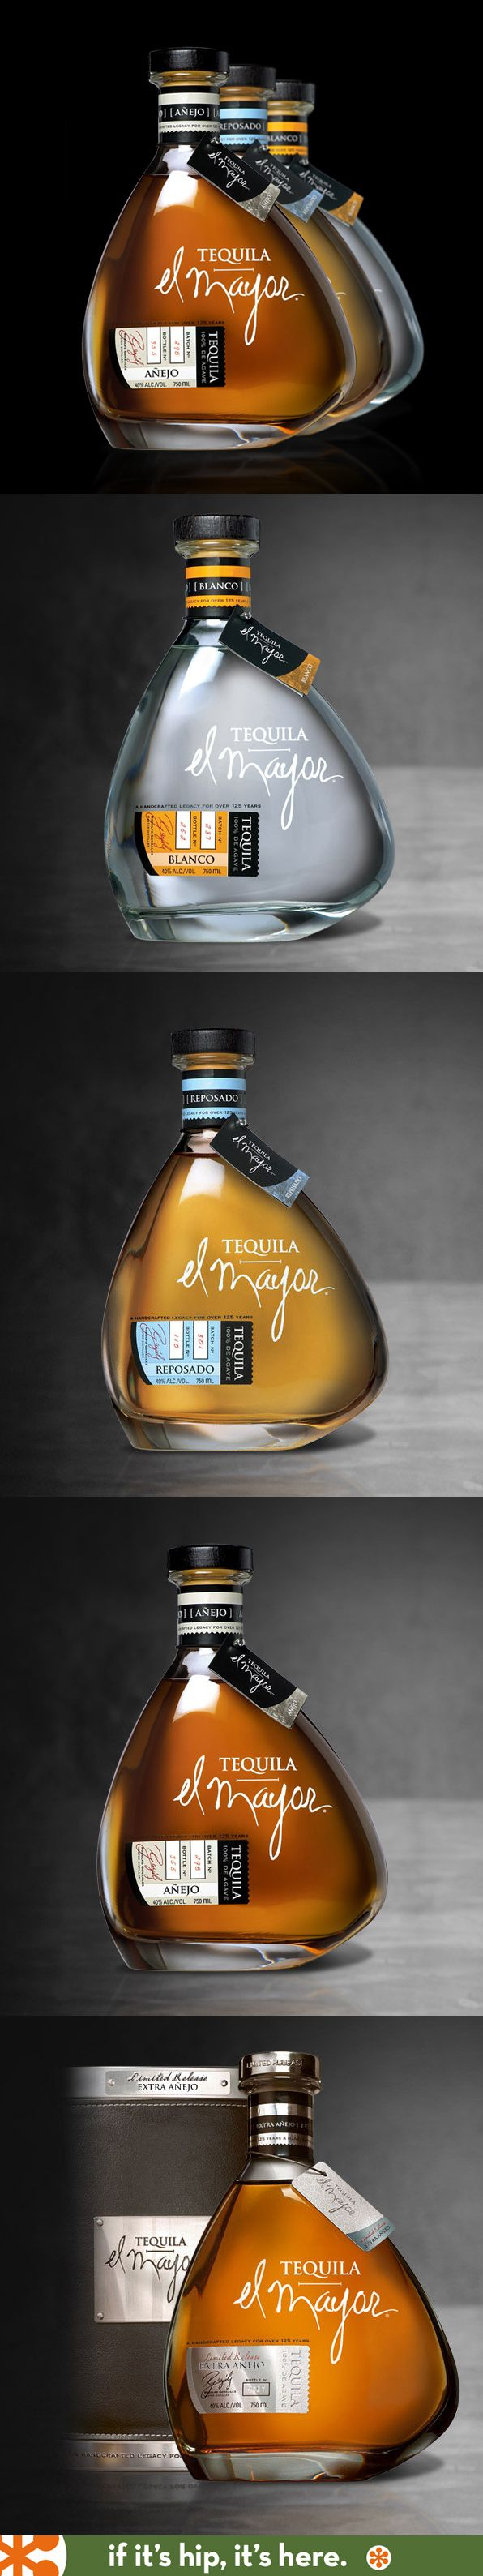 El Major Tequilas. The night before he meets Luz de Maria, Eddo has a lonely night with a bottle of tequila . . .